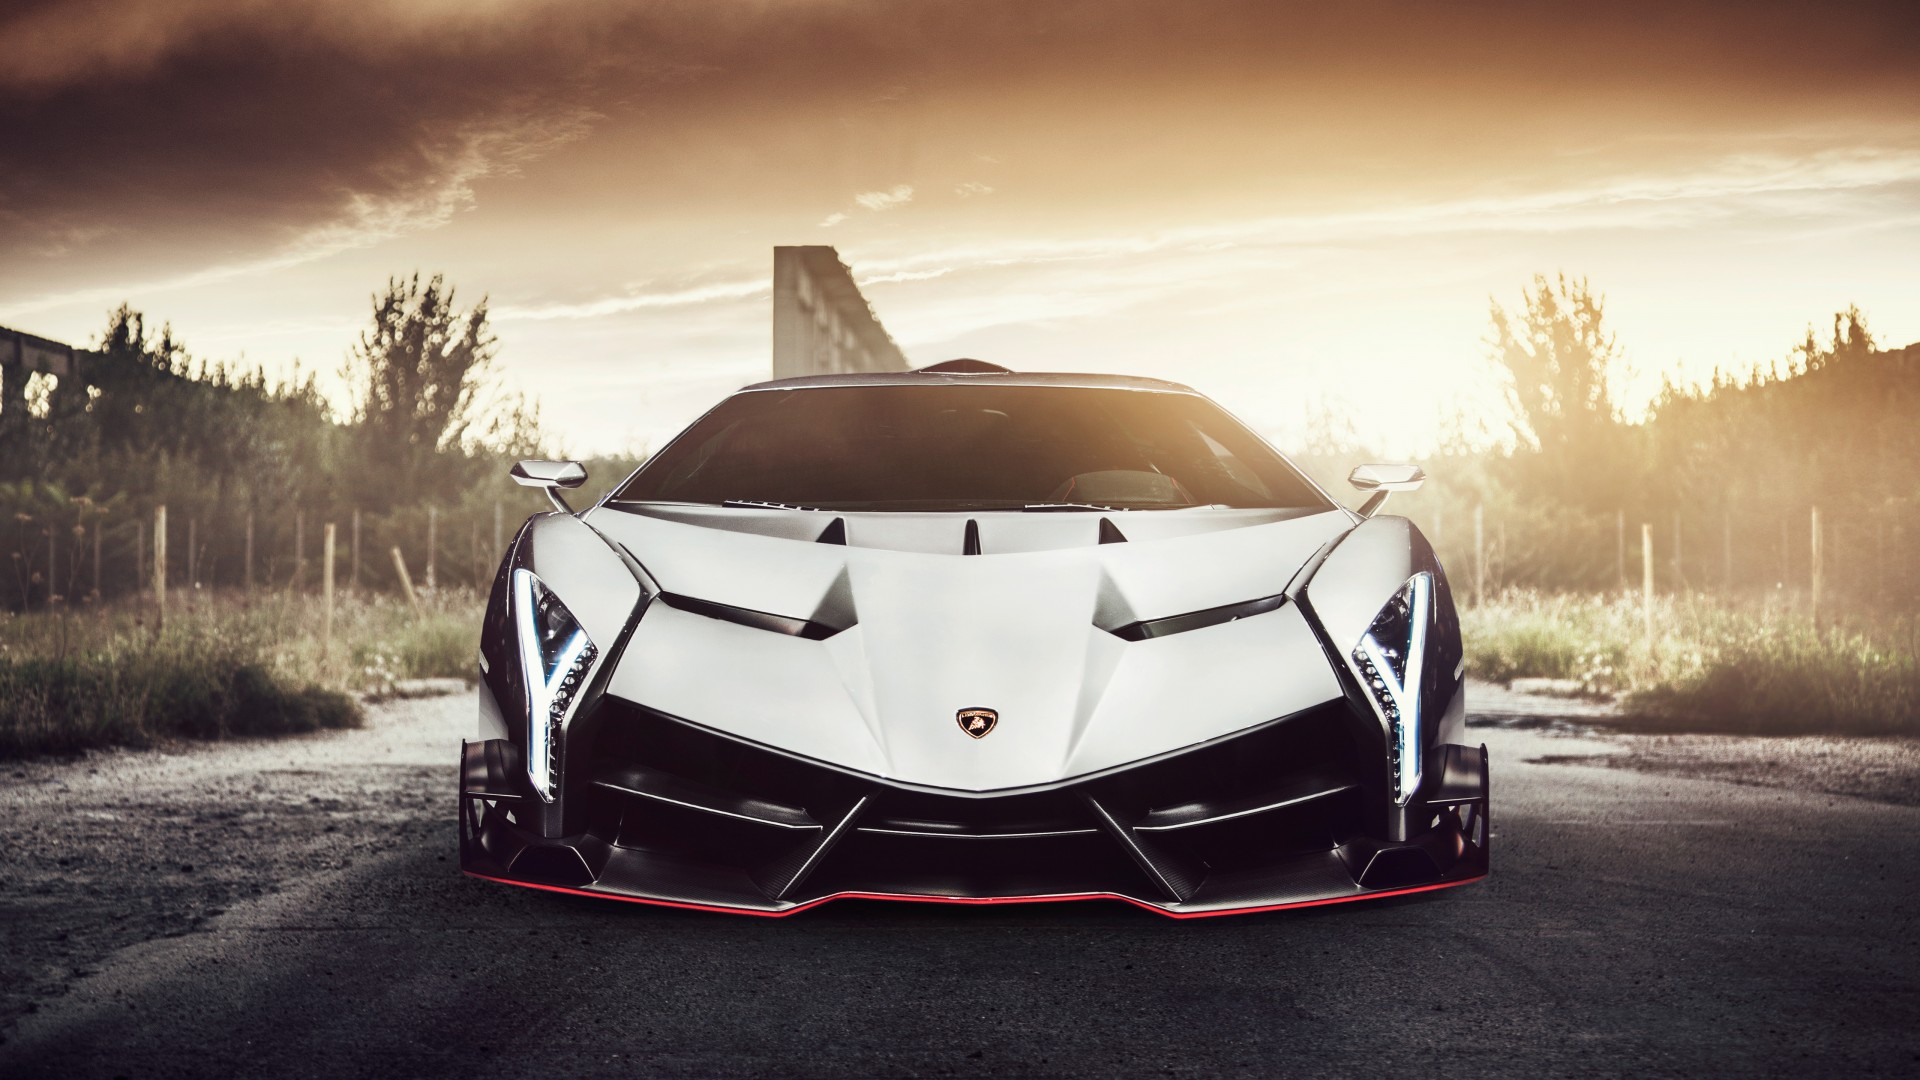 Lamborghini Veneno Wallpaper Iphone Lamborghini Veneno Hyper Car 5k Wallpaper Hd Car